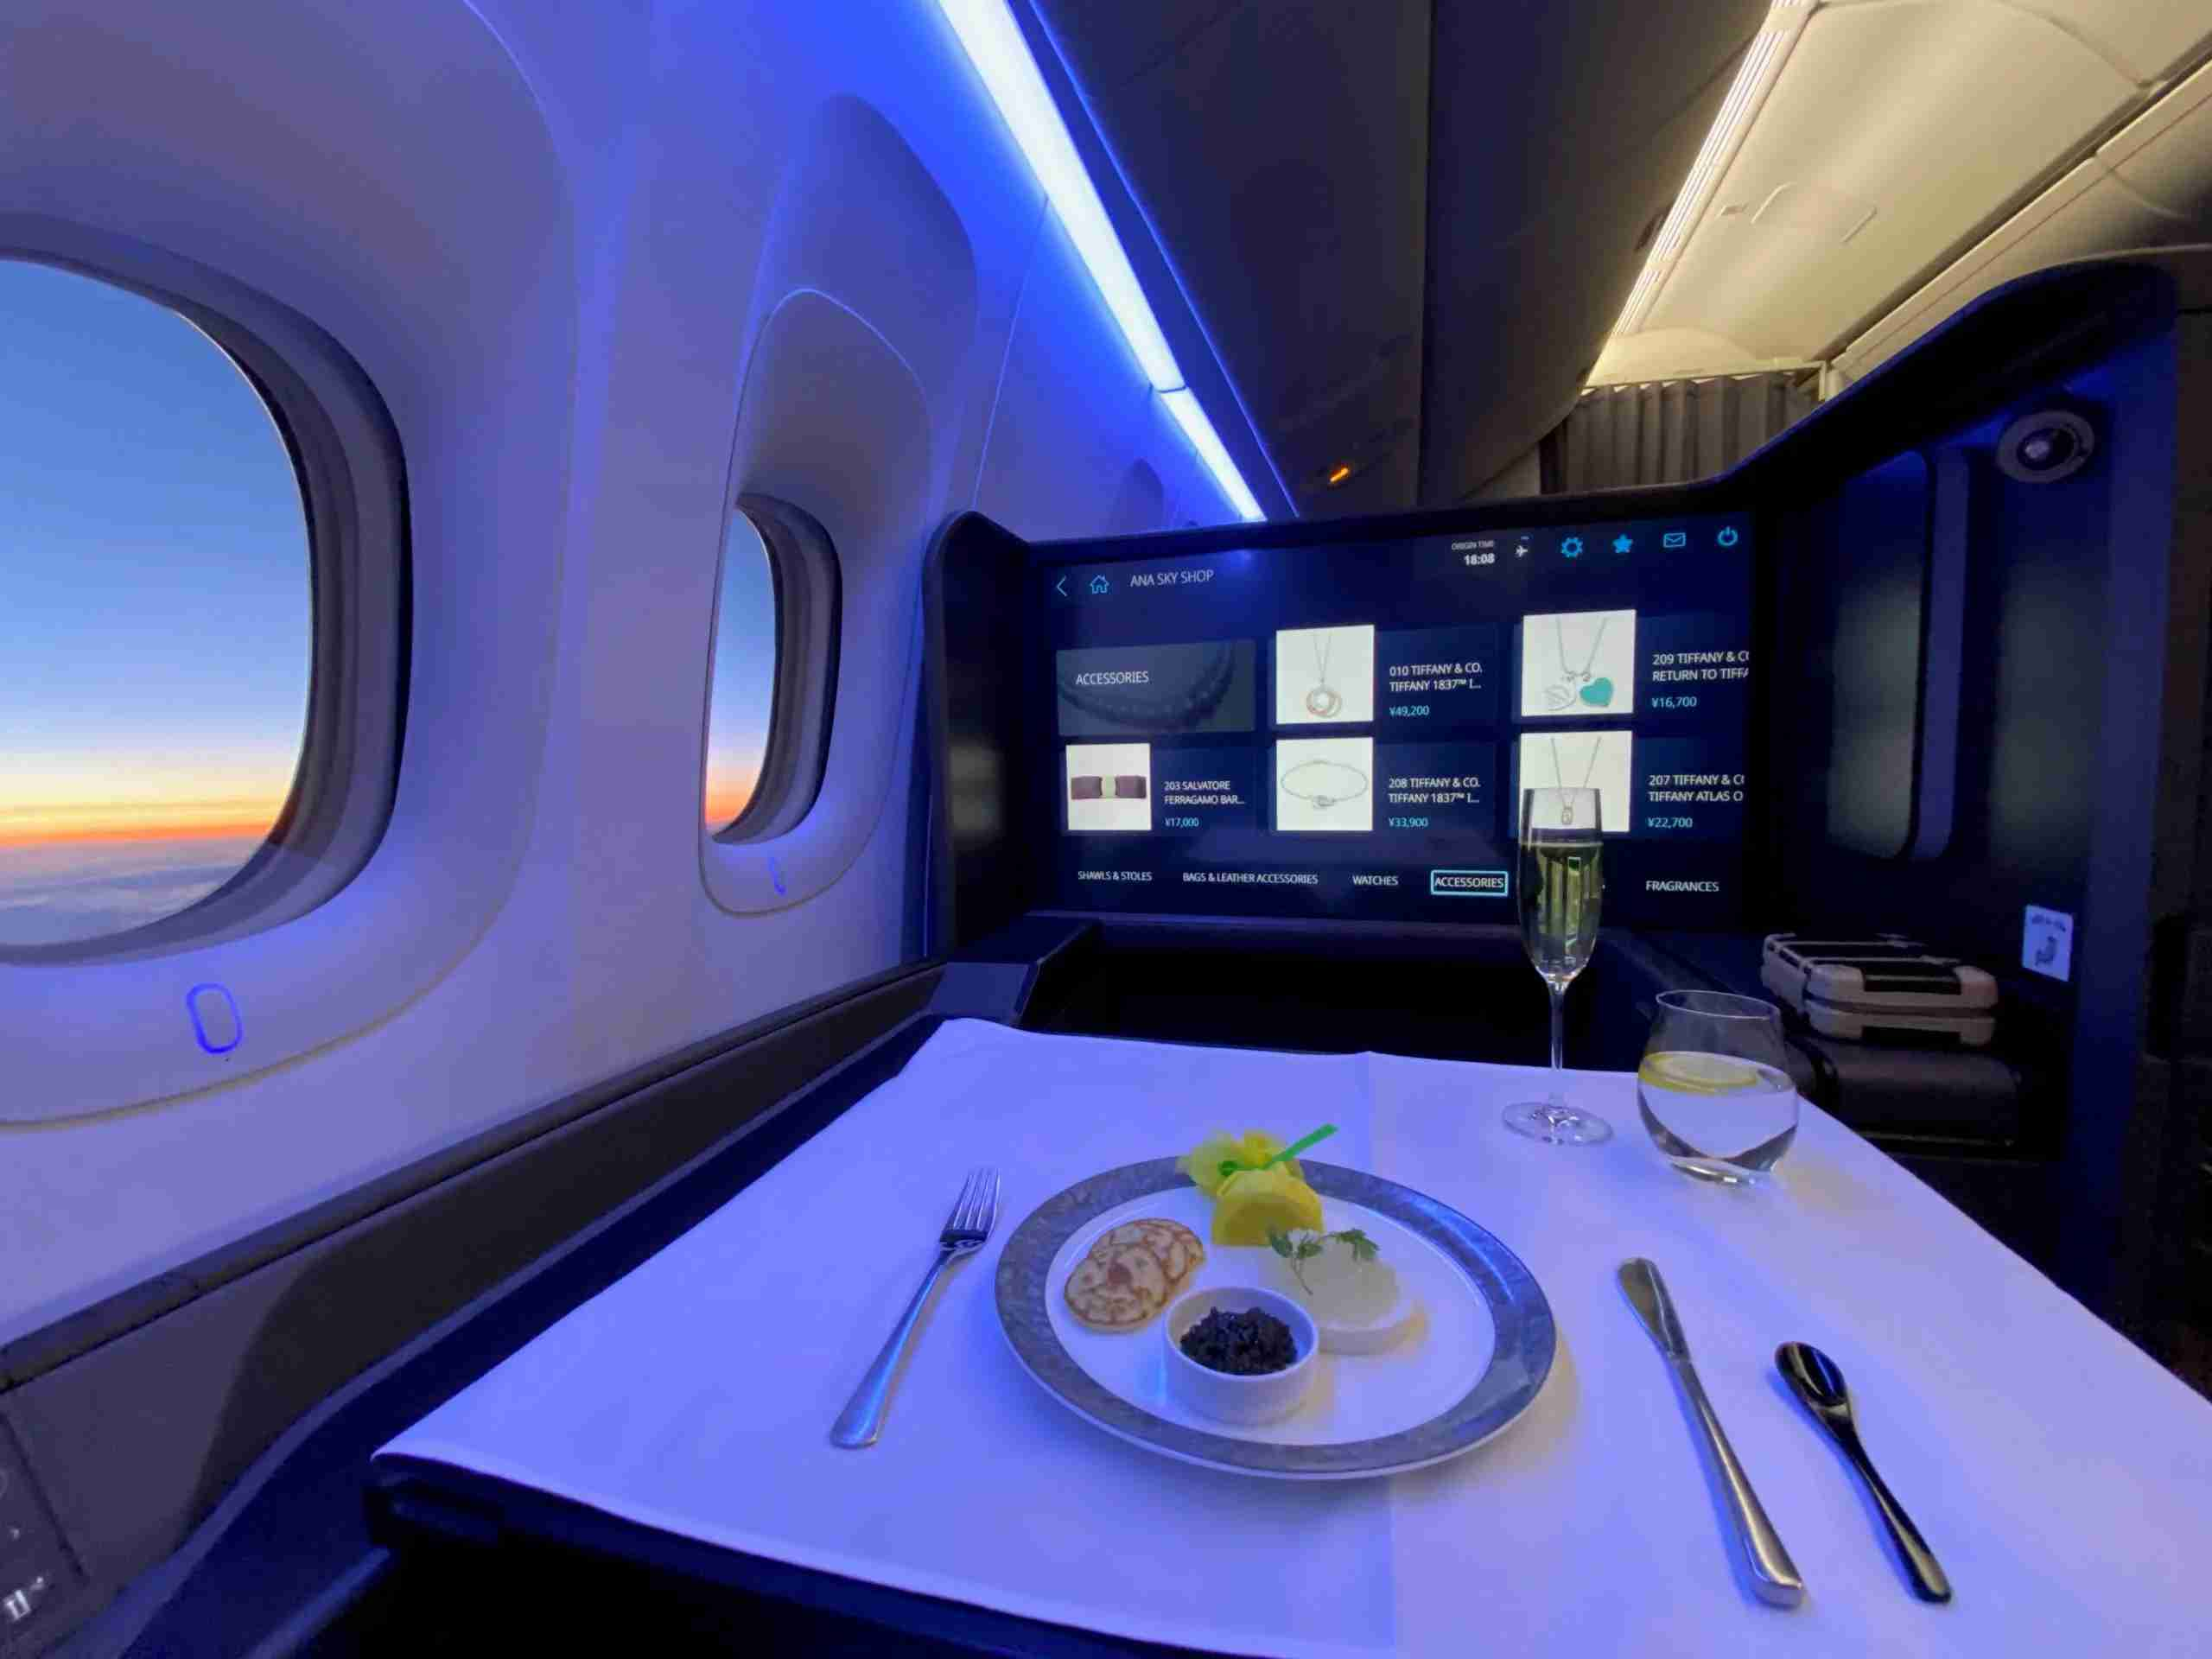 Fly ANA First Class with Avianca LifeMiles (Photo by Chris Dong/The Points Guy)